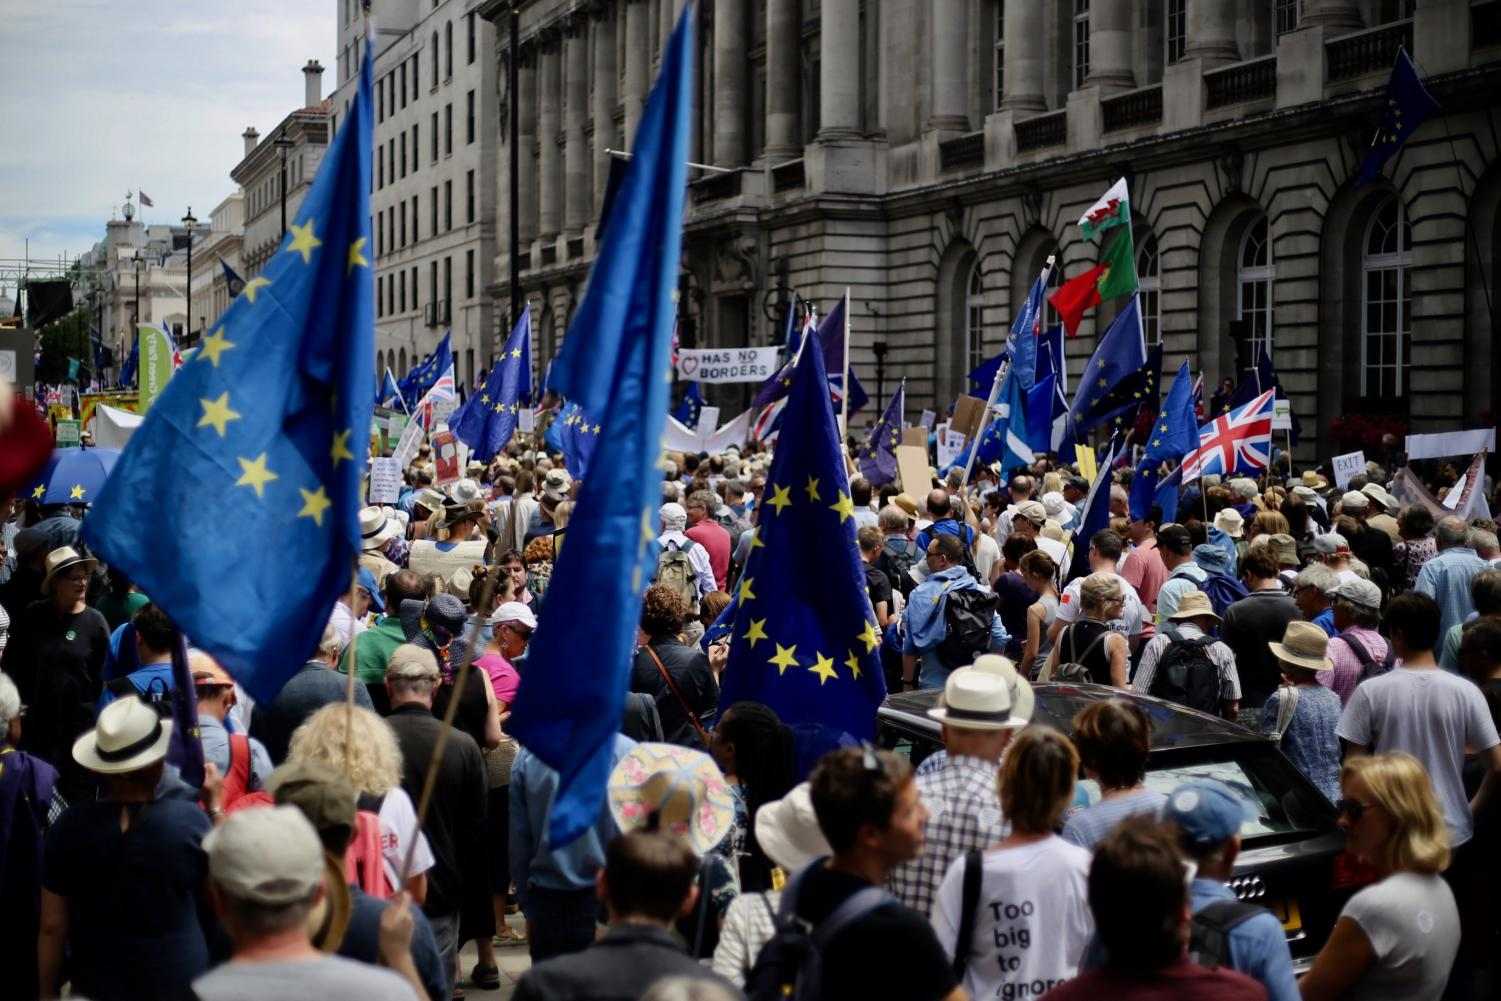 People's vote on Brexit march, London, June 23, 2018.